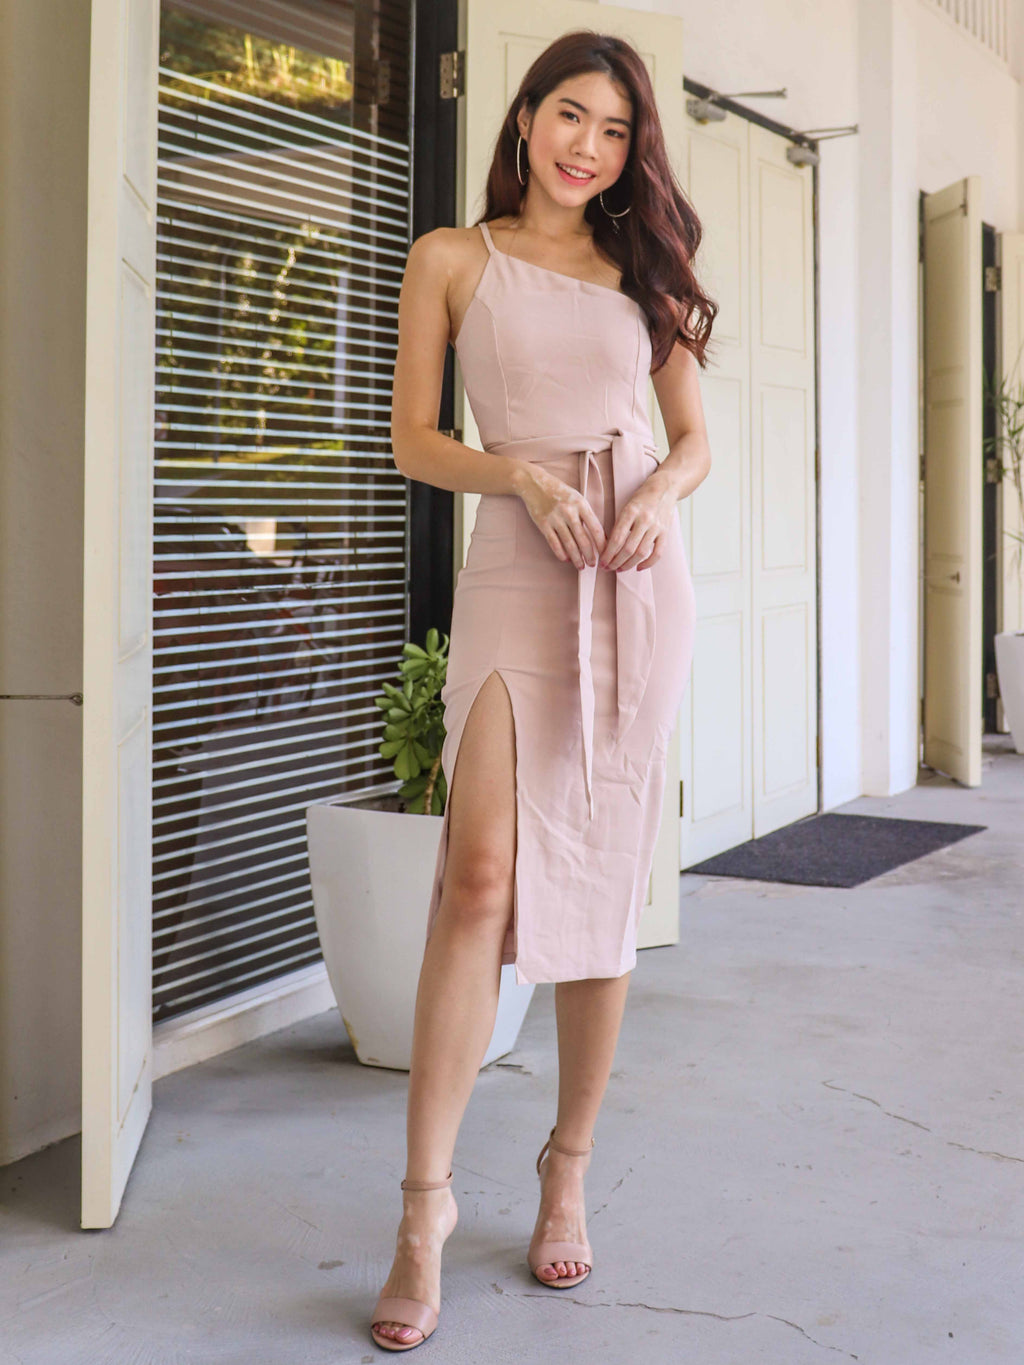 Felly Padded Slit Dress in Nude